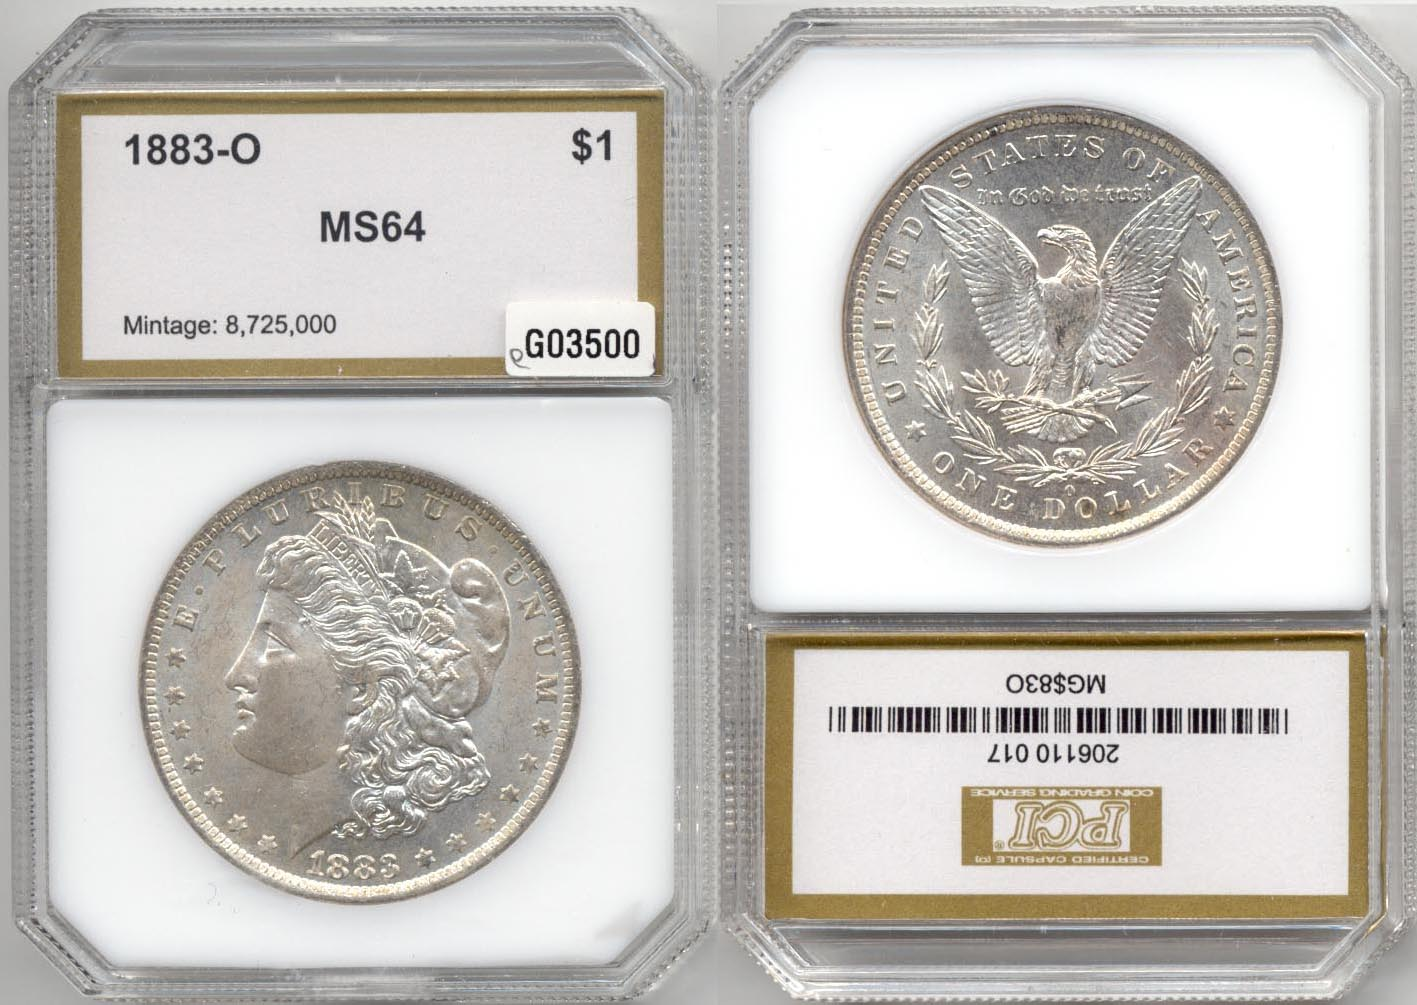 1883-O Morgan Silver Dollar PCI MS-64 e